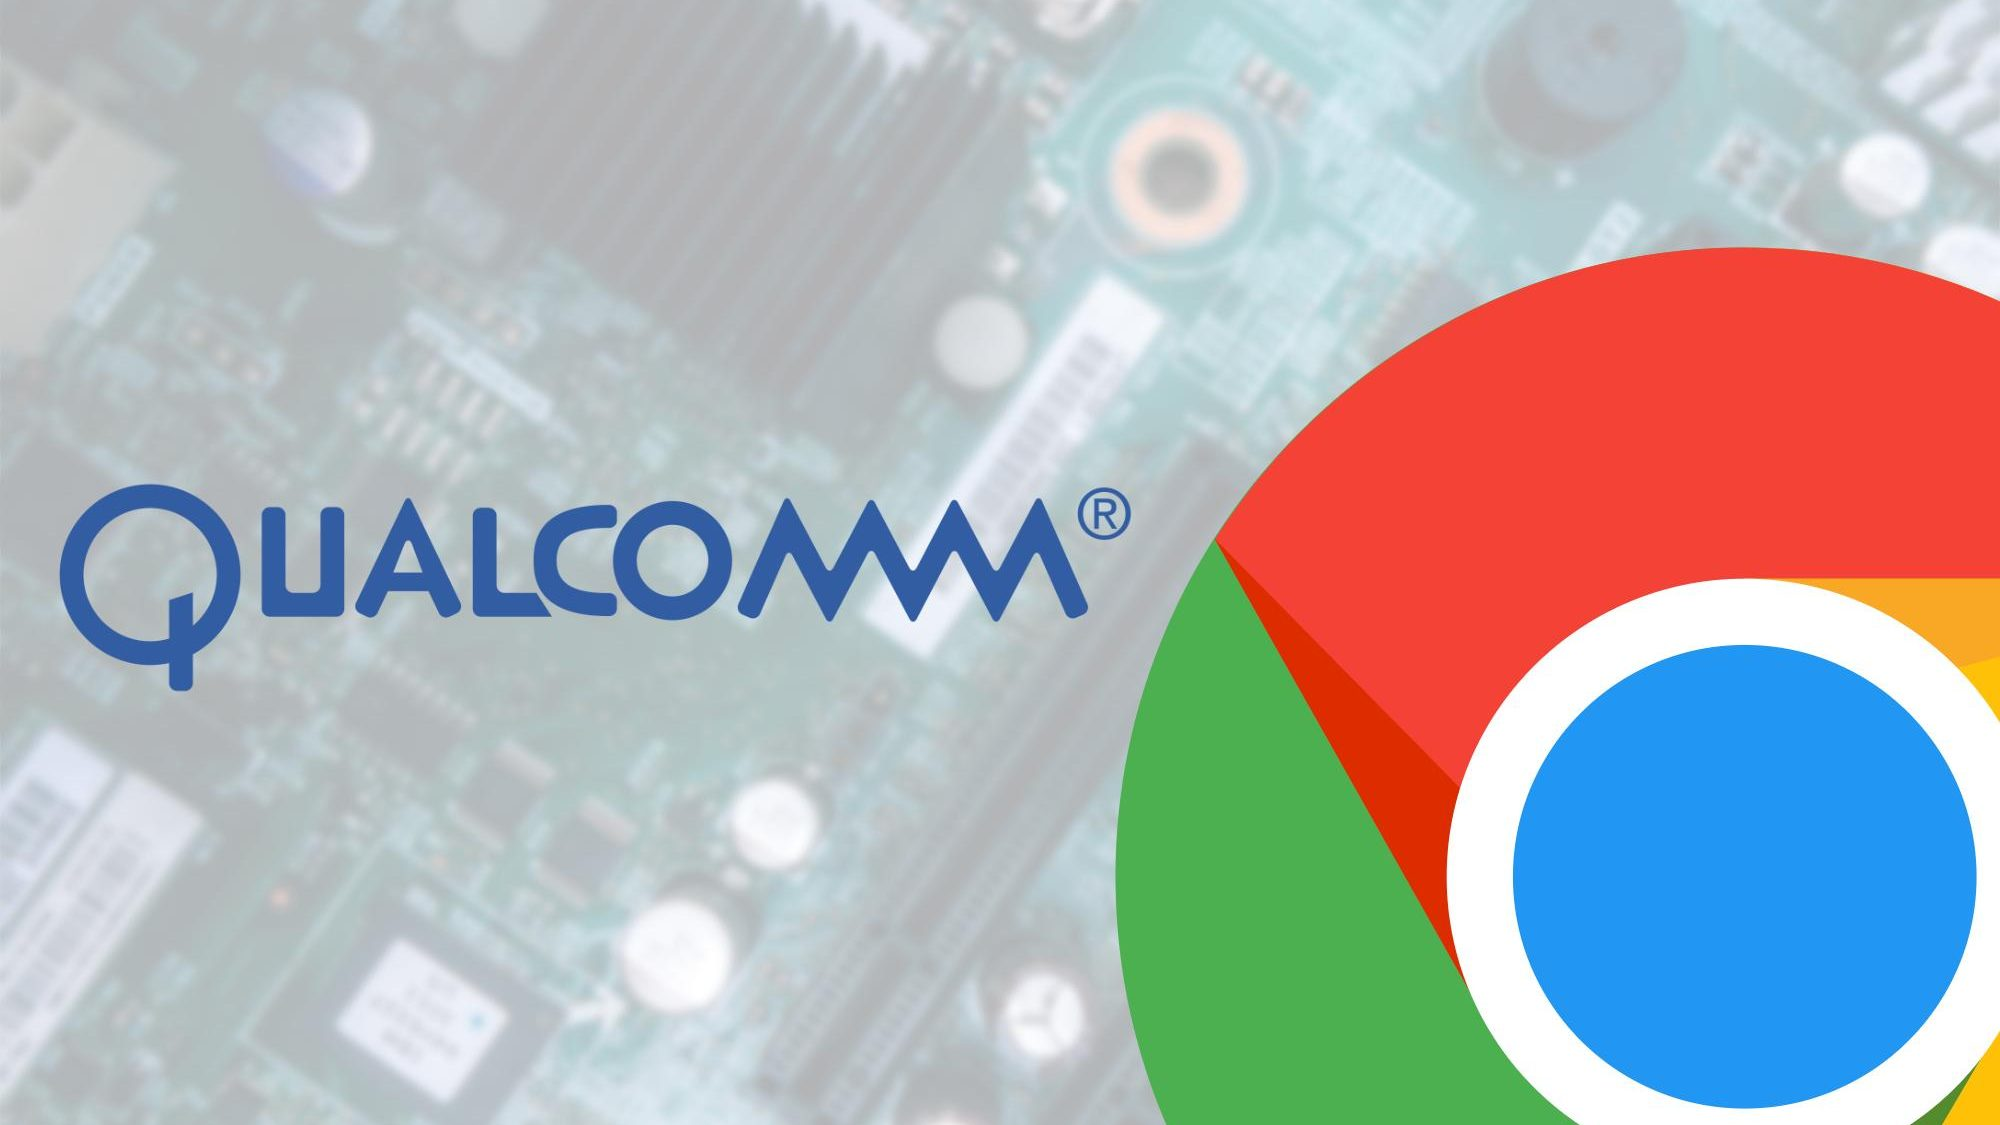 New baseboard 'Lazor' signals development beginning to expand on Qualcomm 7c Chromebooks